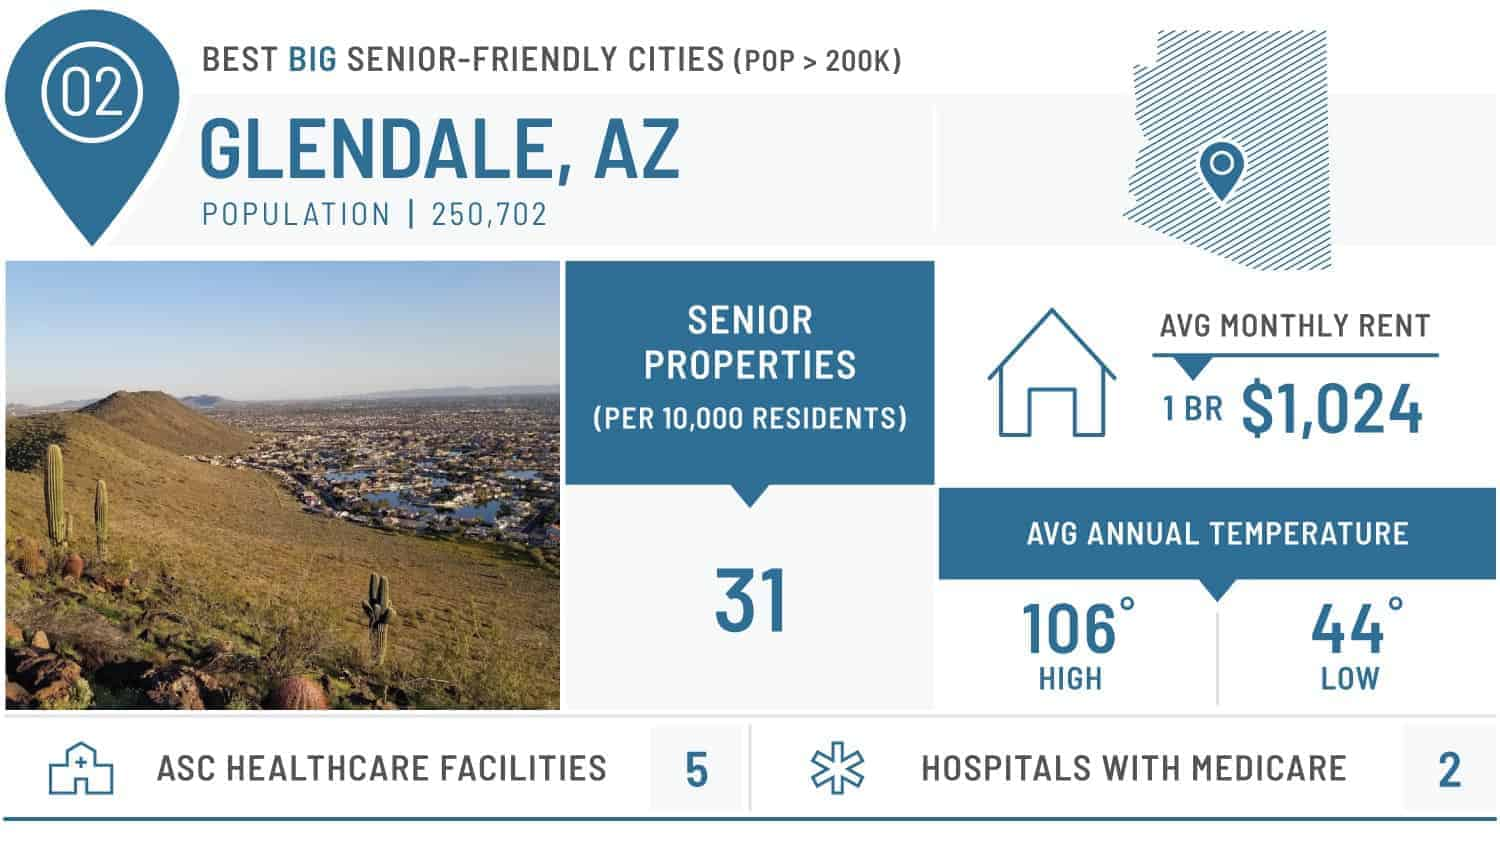 visual of the best large city for seniors - glendale